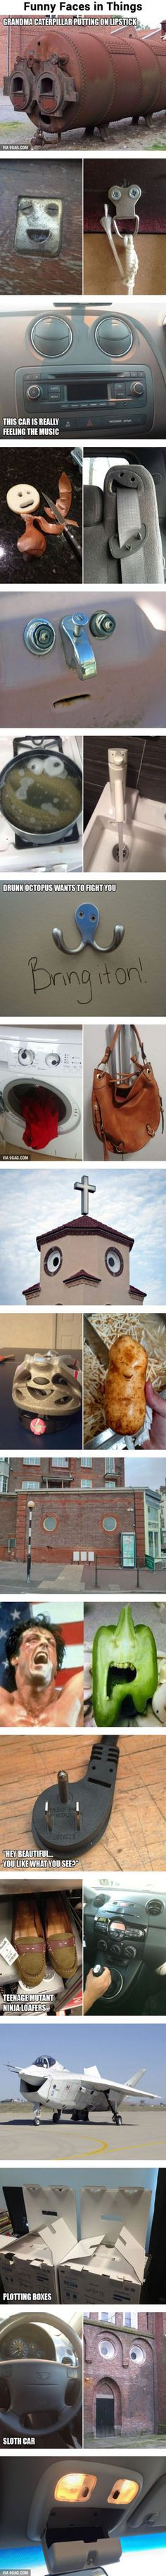 Funny faces in everyday objects